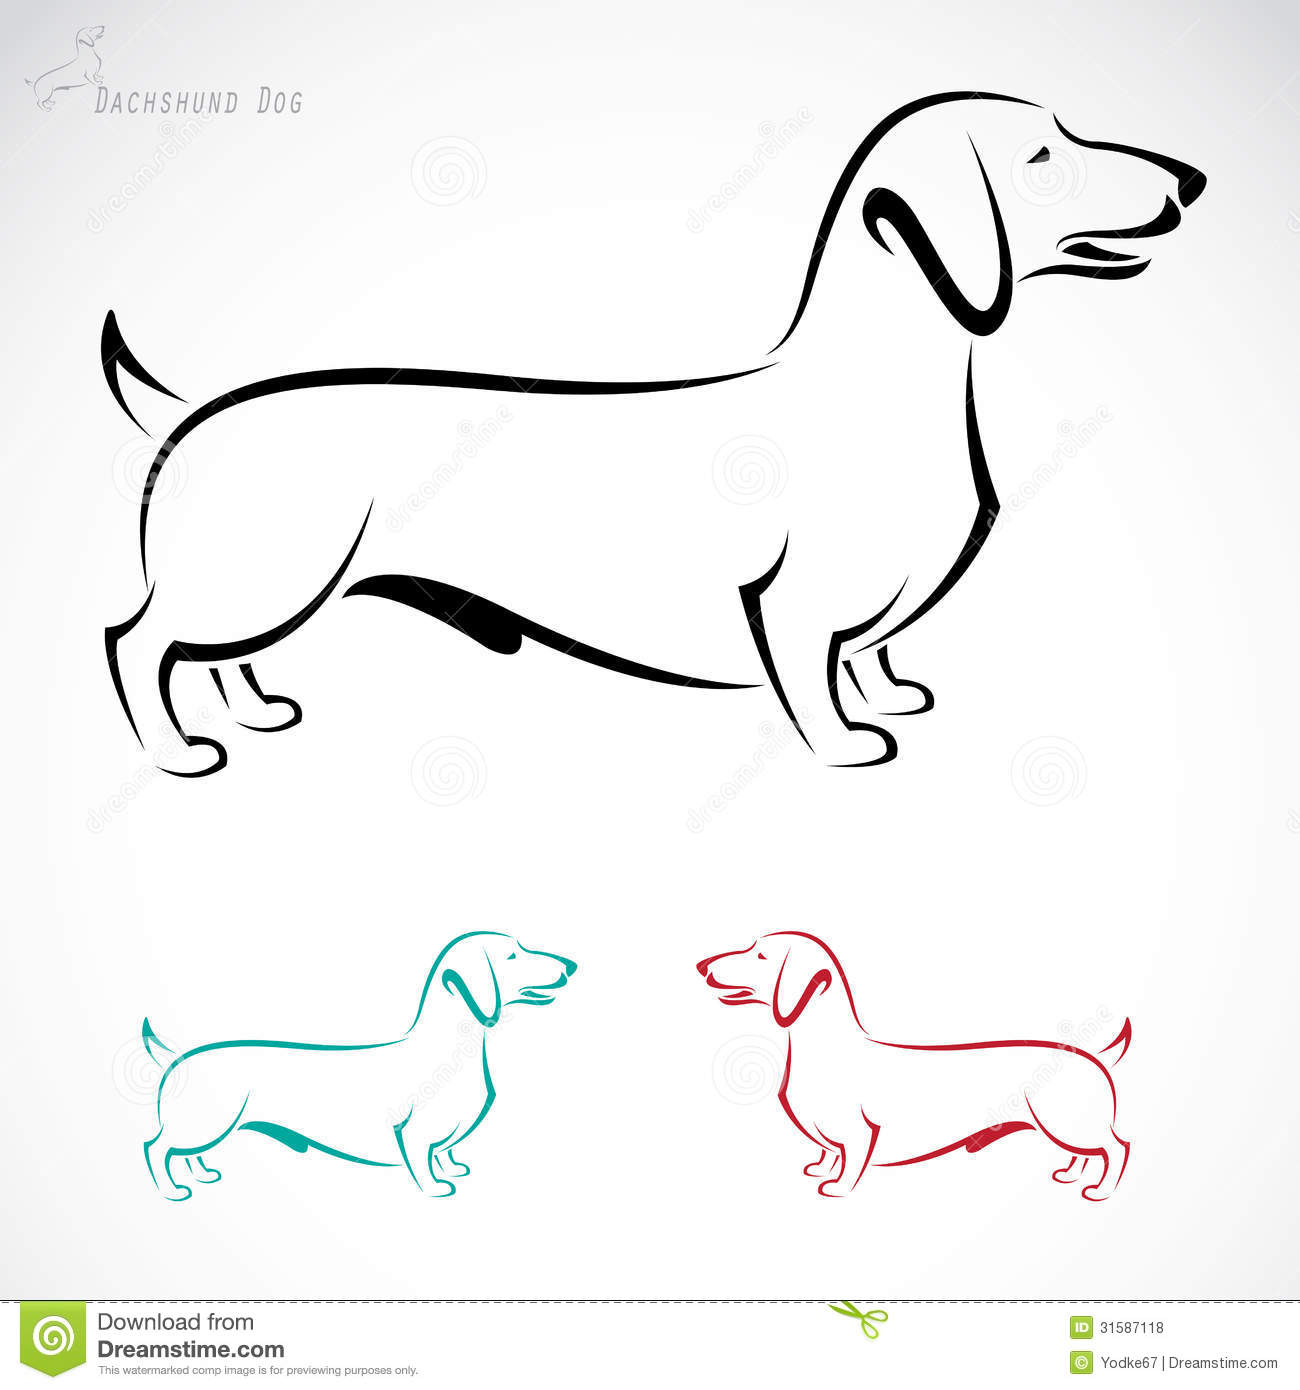 Vector Image Of An Dog Dachshund Royalty Free Stock